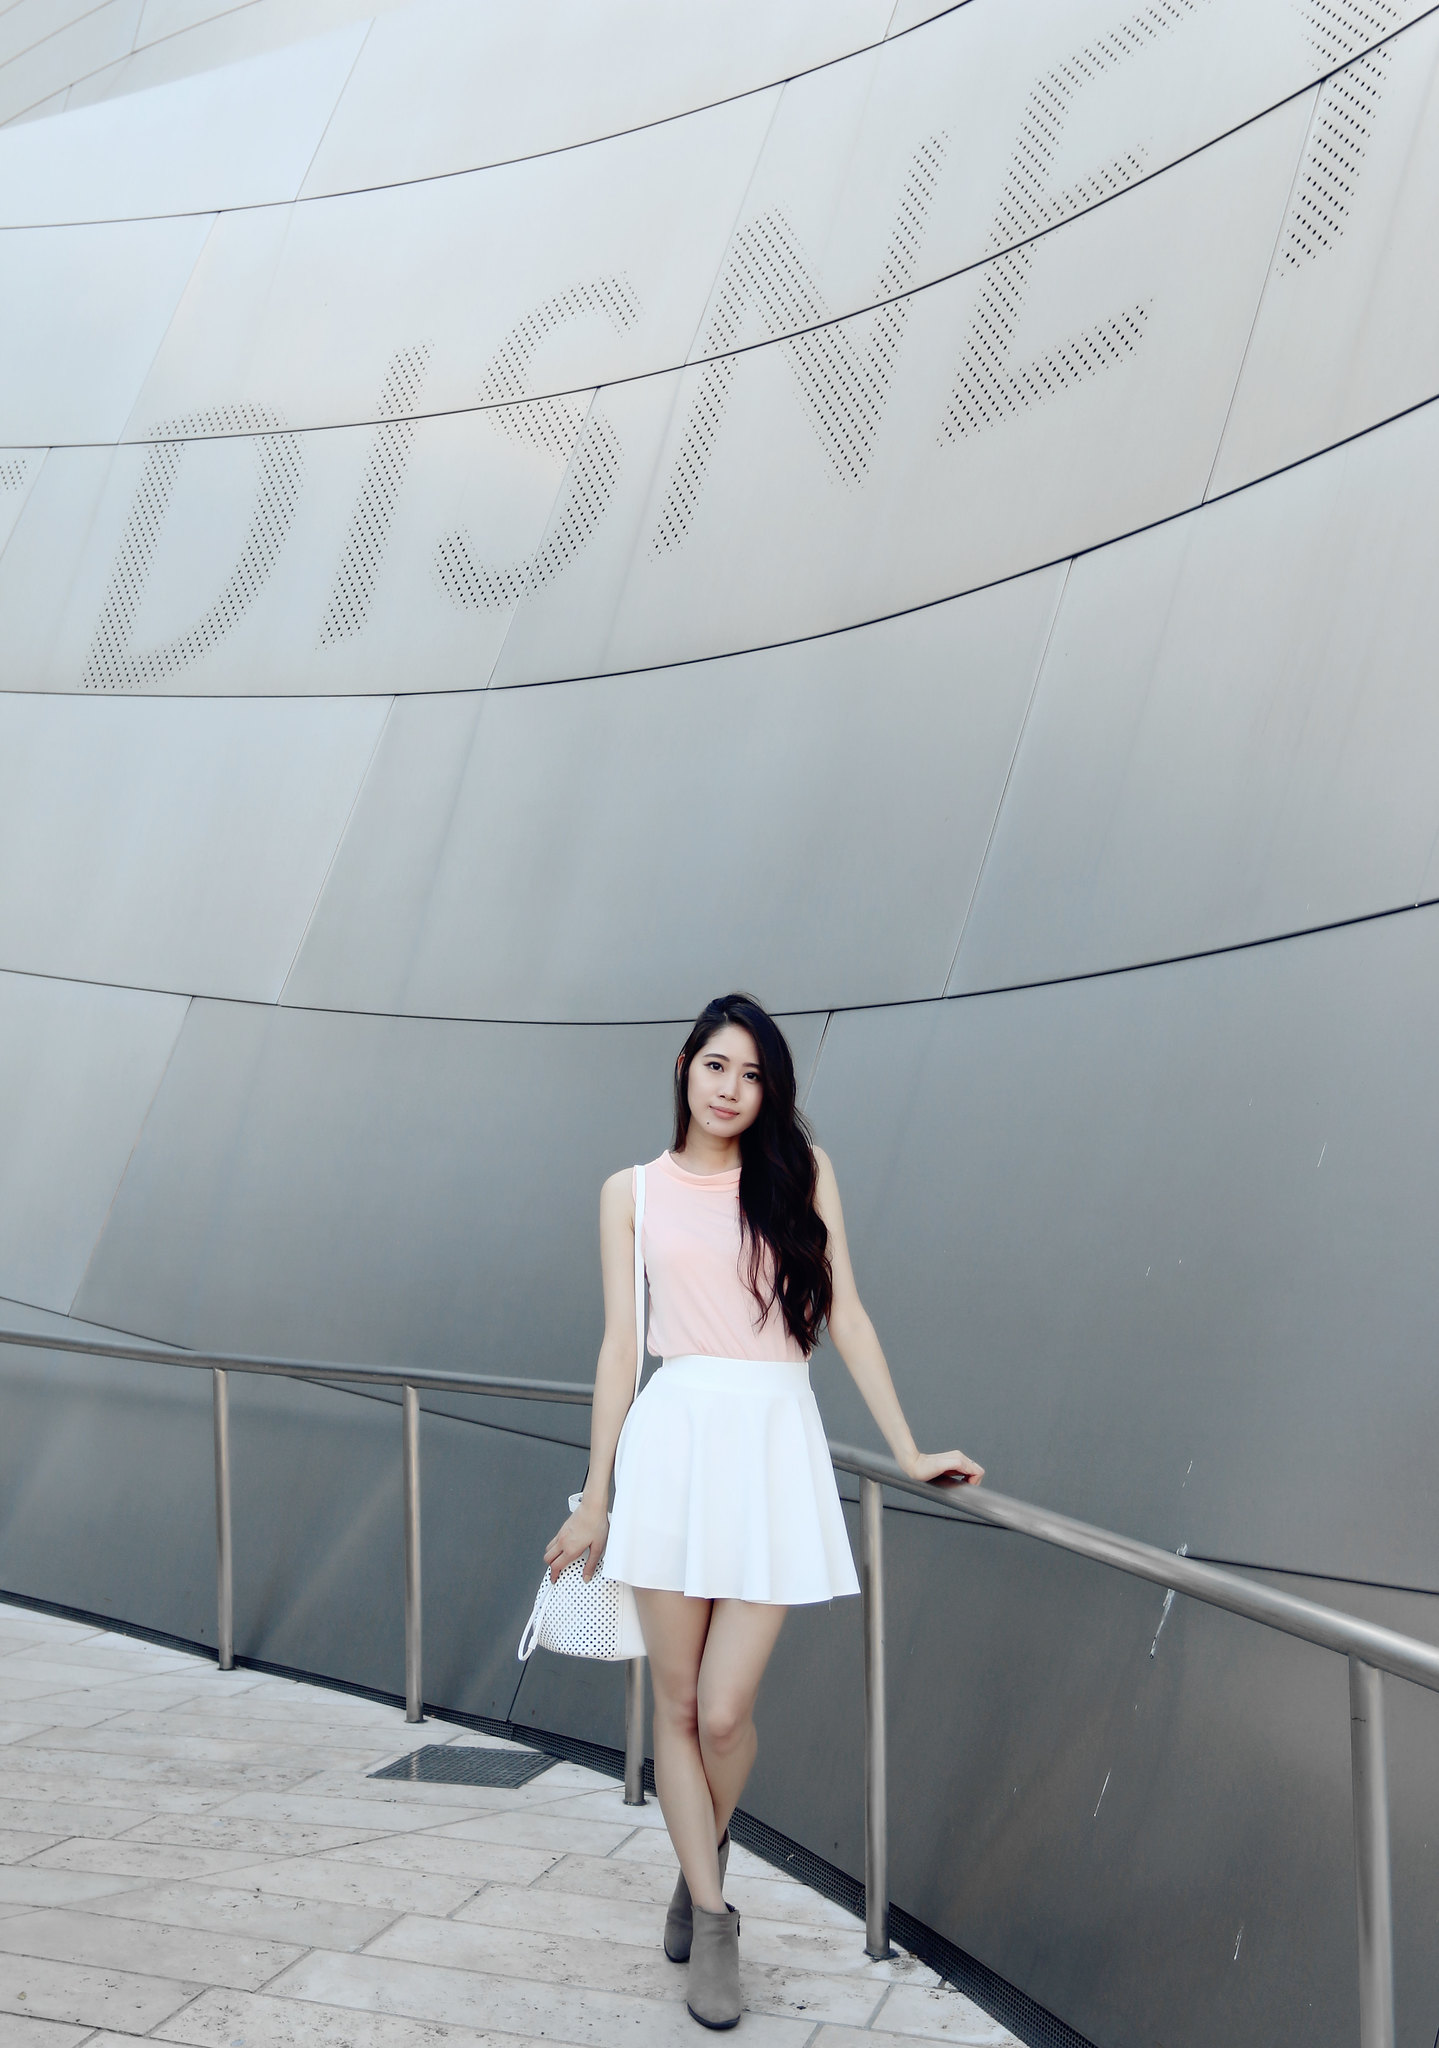 3055-ootd-fashion-bananarepublic-blush-ninewest-summerfashion-koreanfashion-clothestoyouuu-elizabeeetht